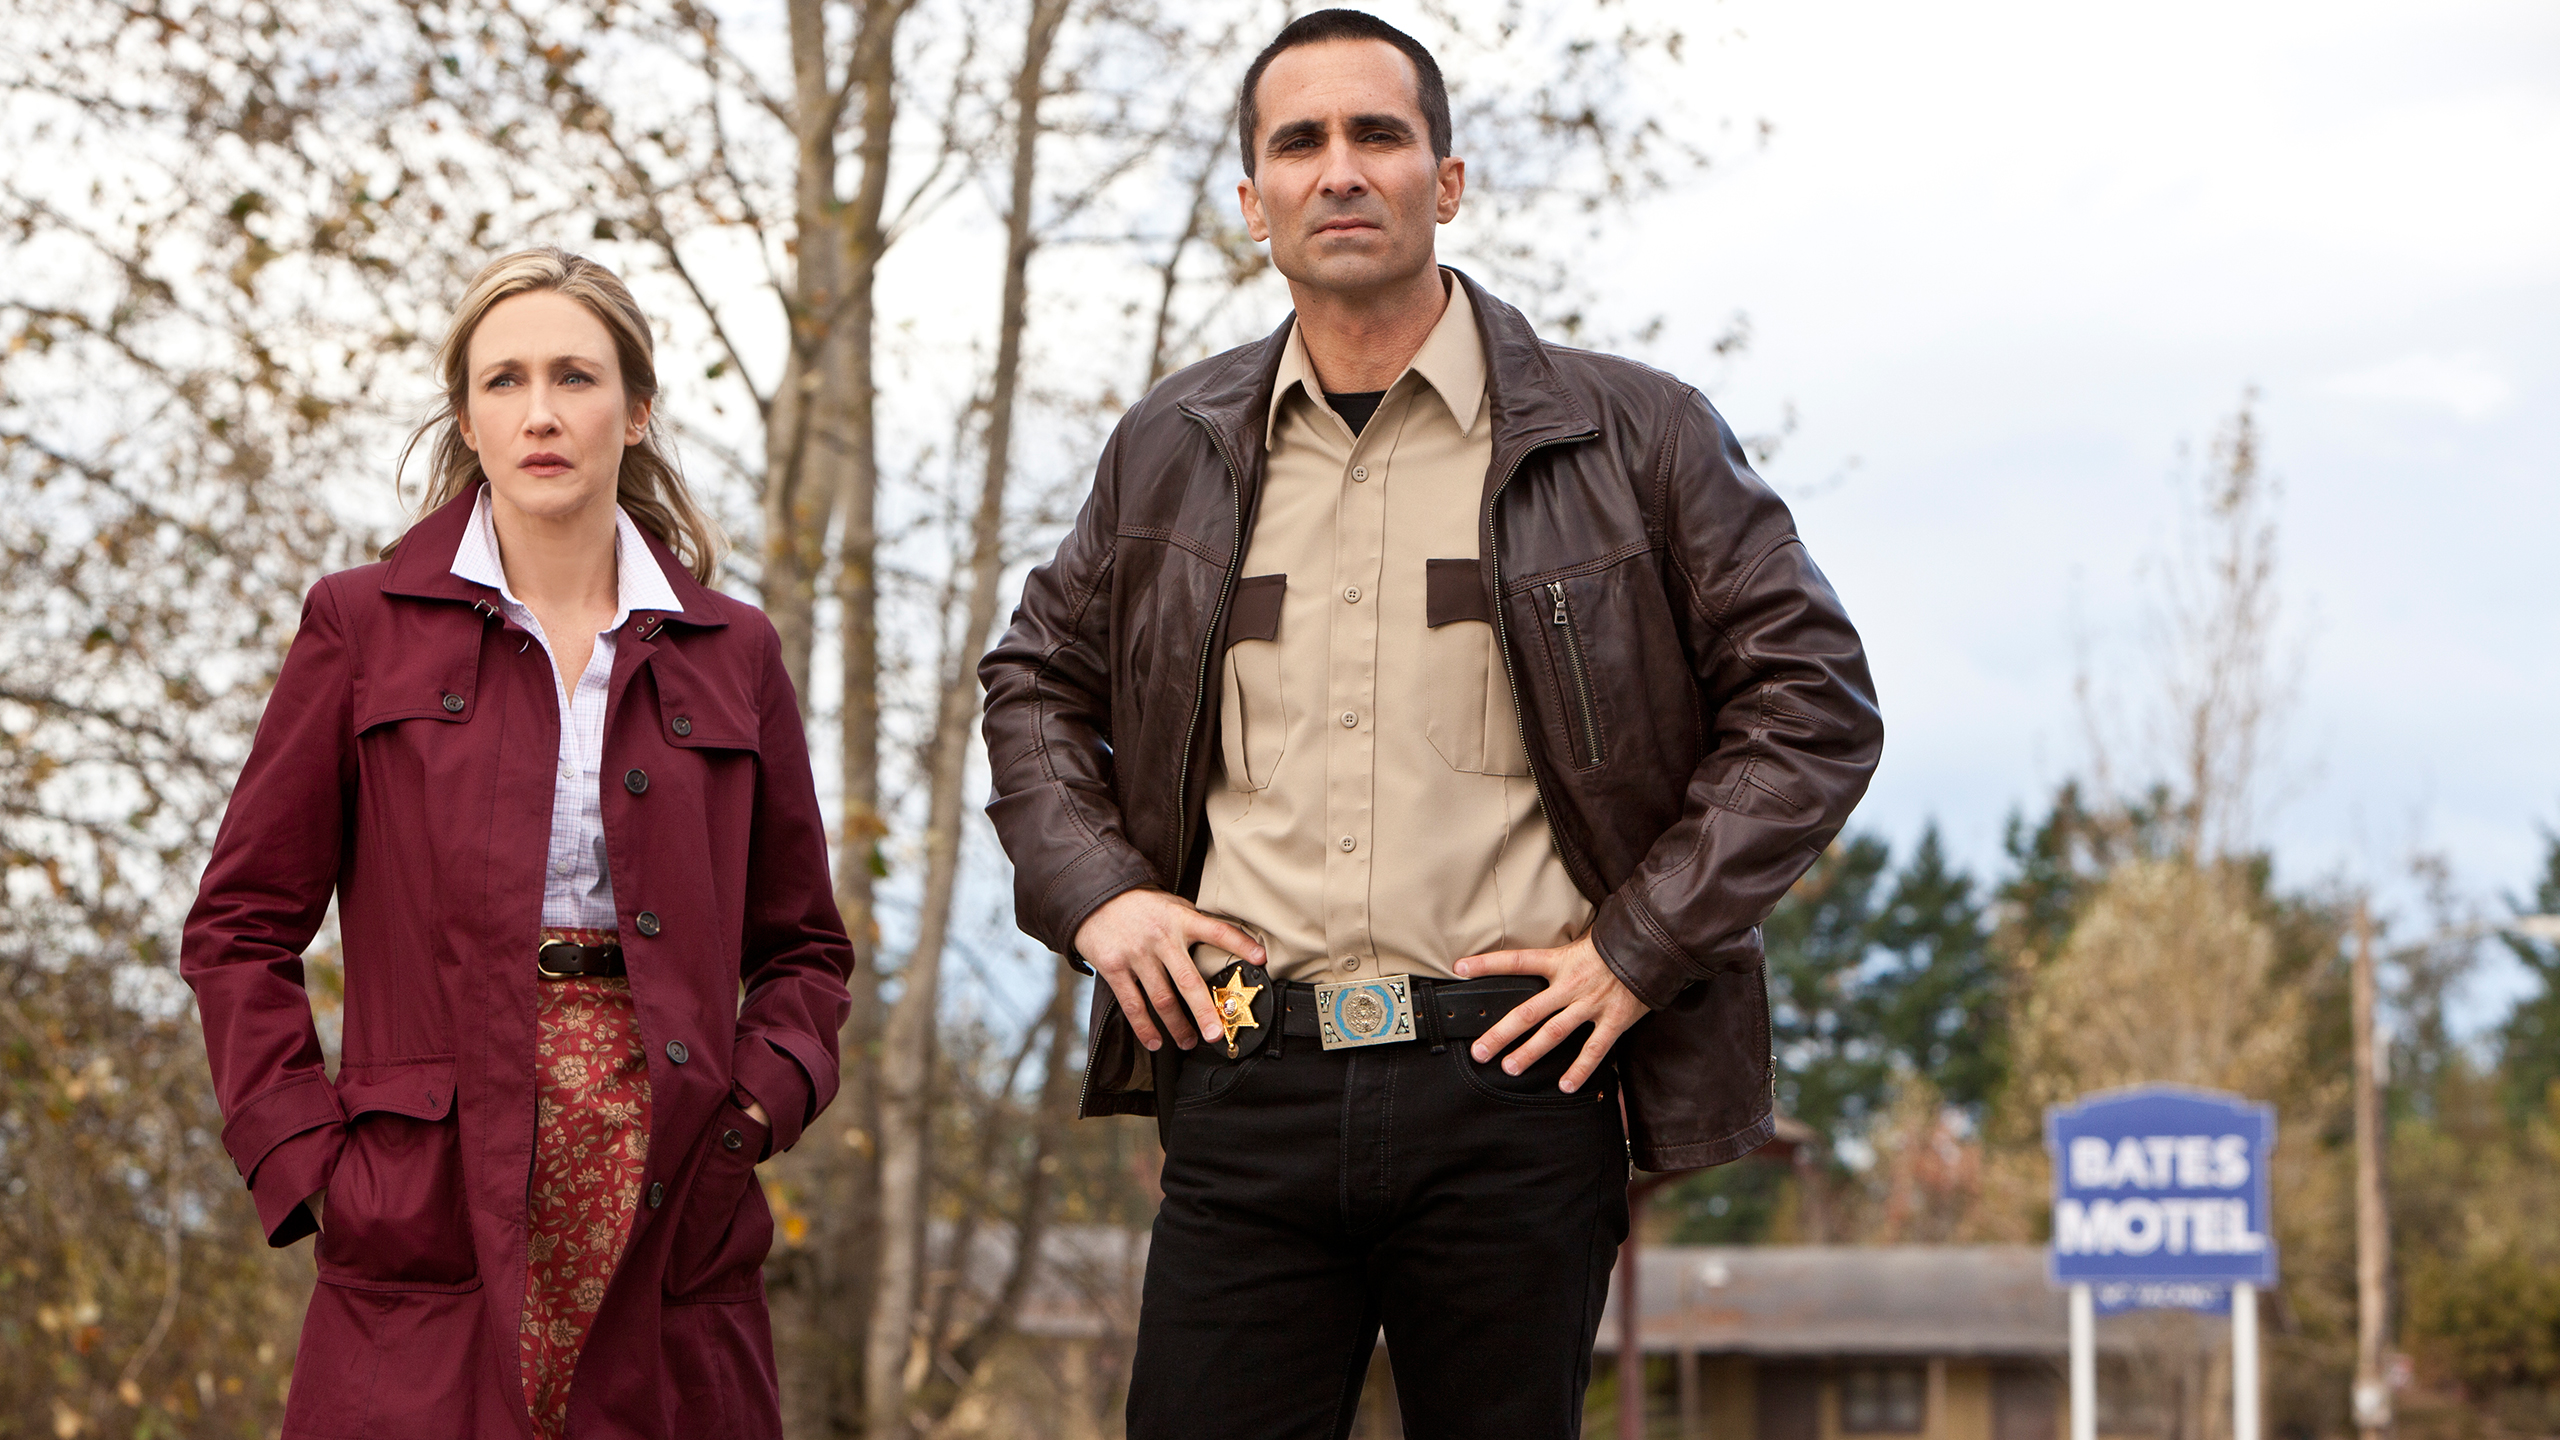 File:05-norma-bates-and-sheriff-romero-outside-the-bates-motel.jpg